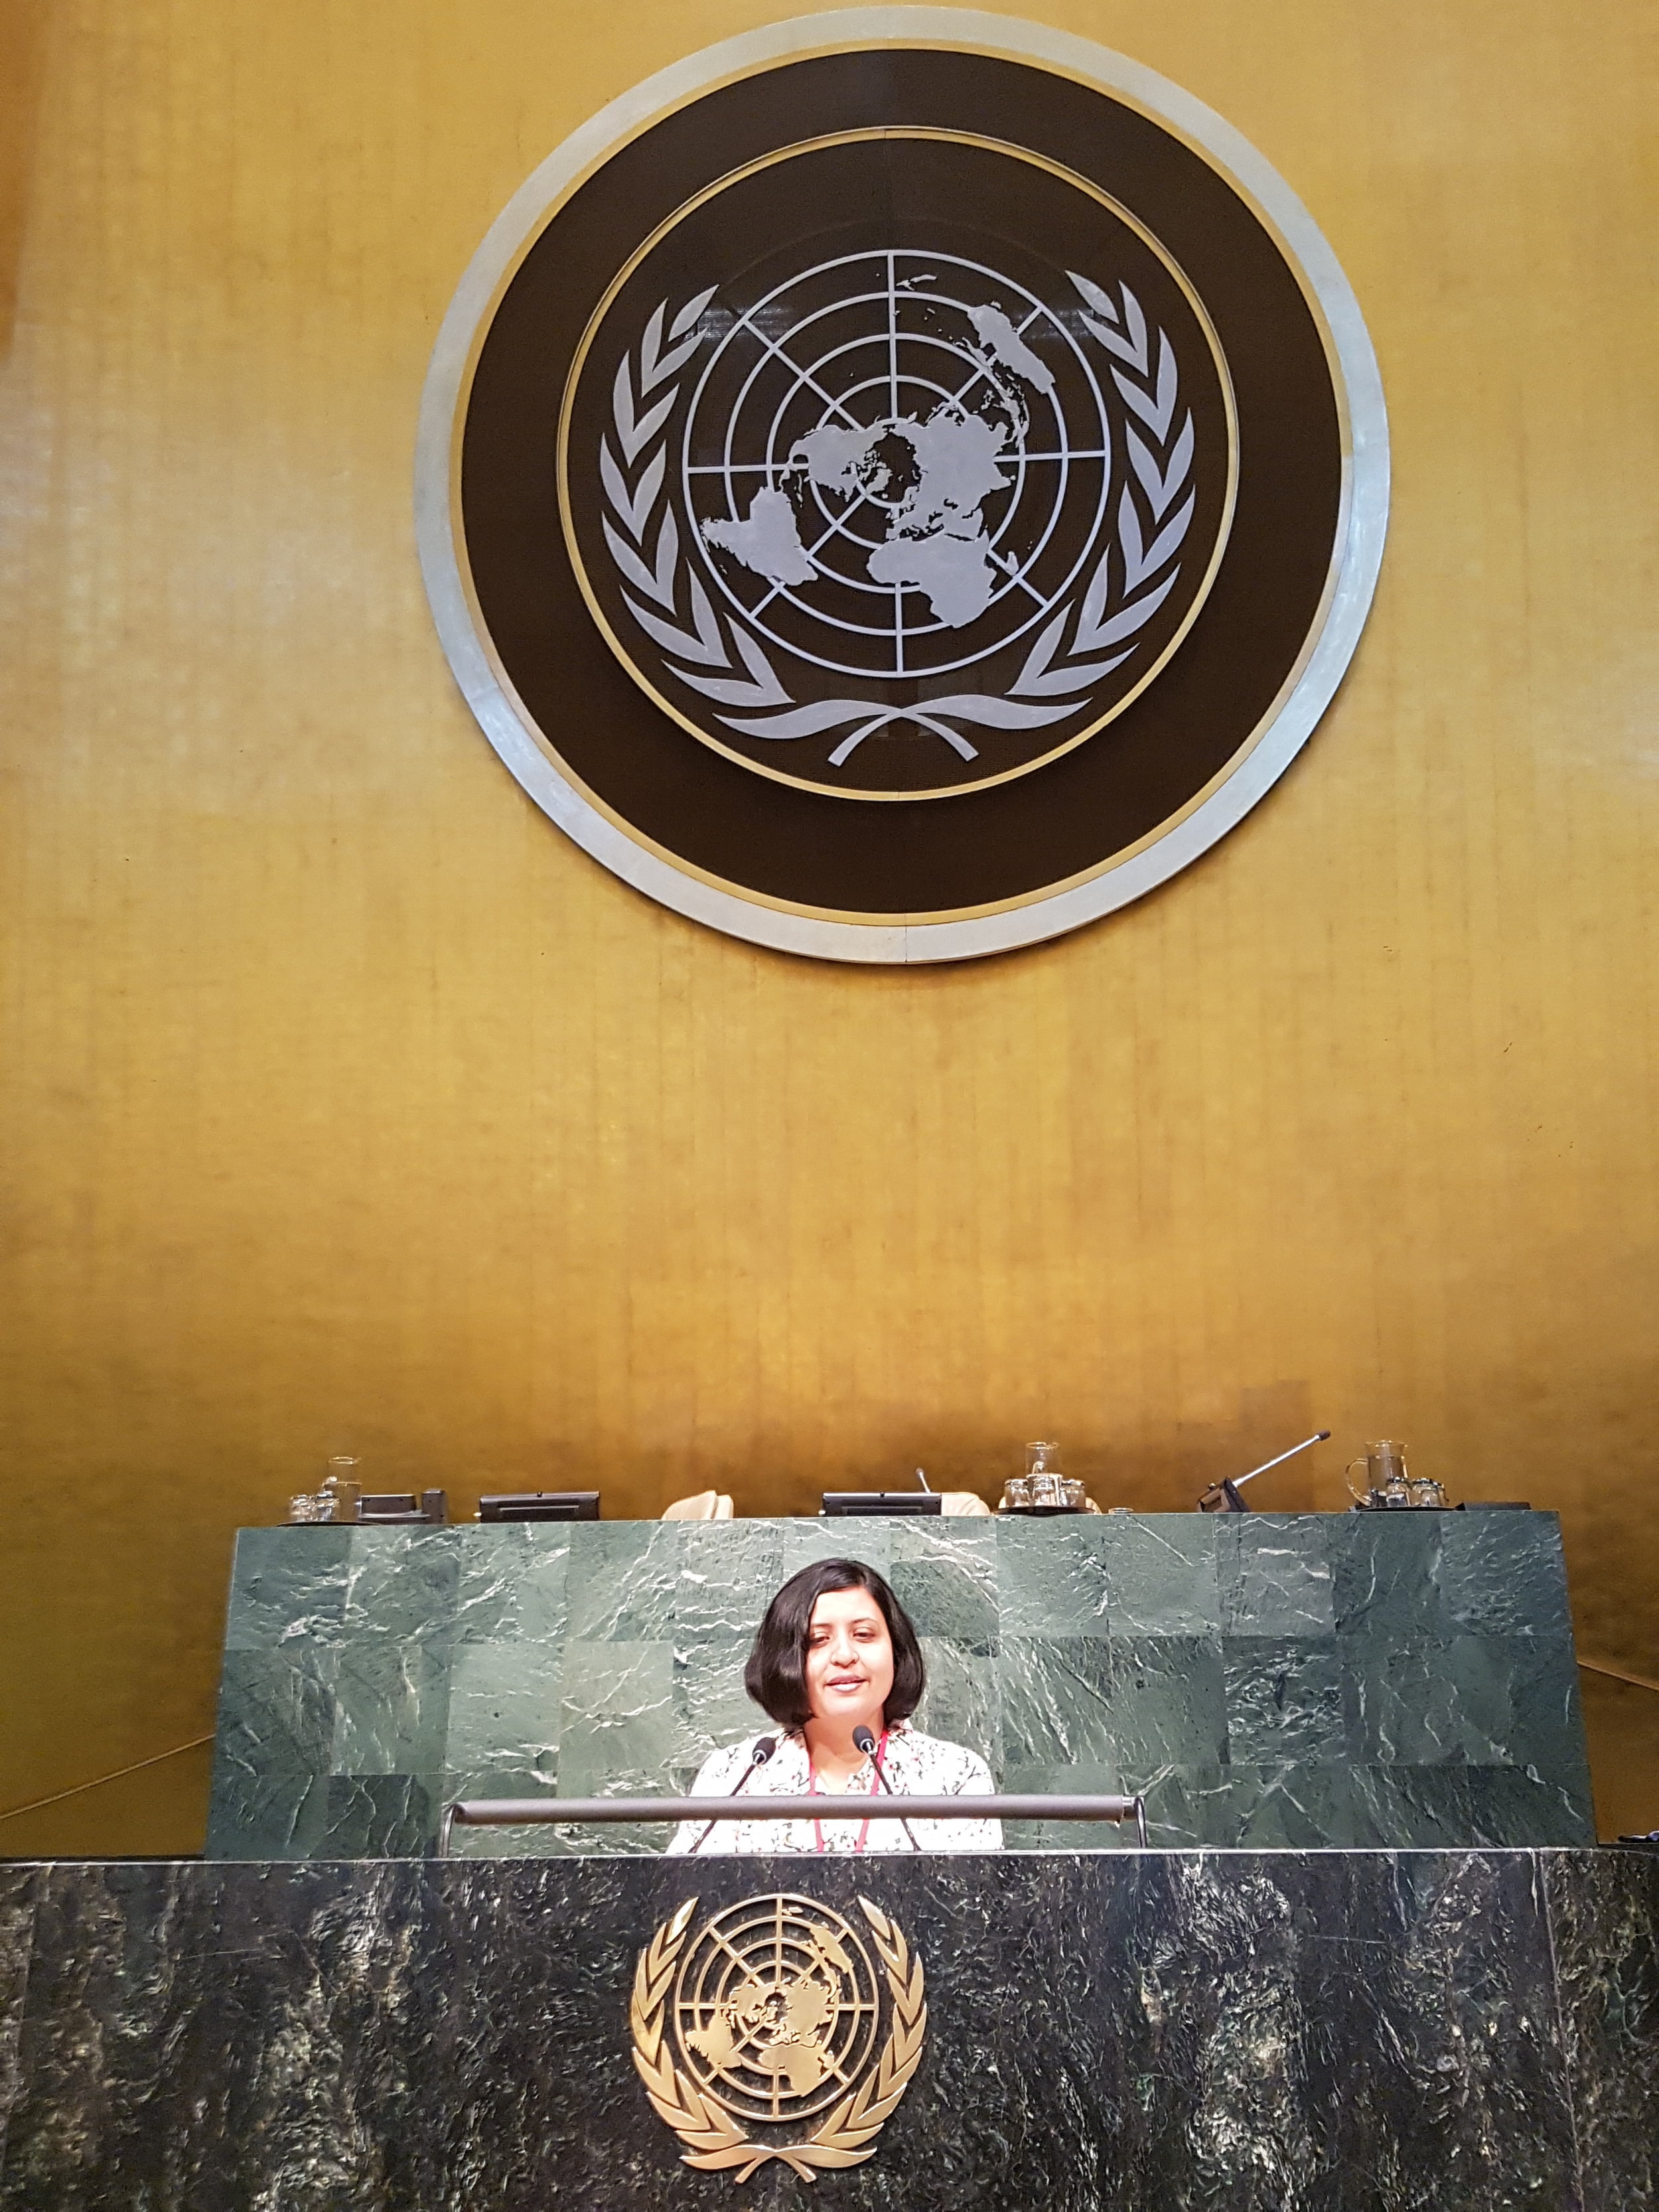 At United Nations, New York